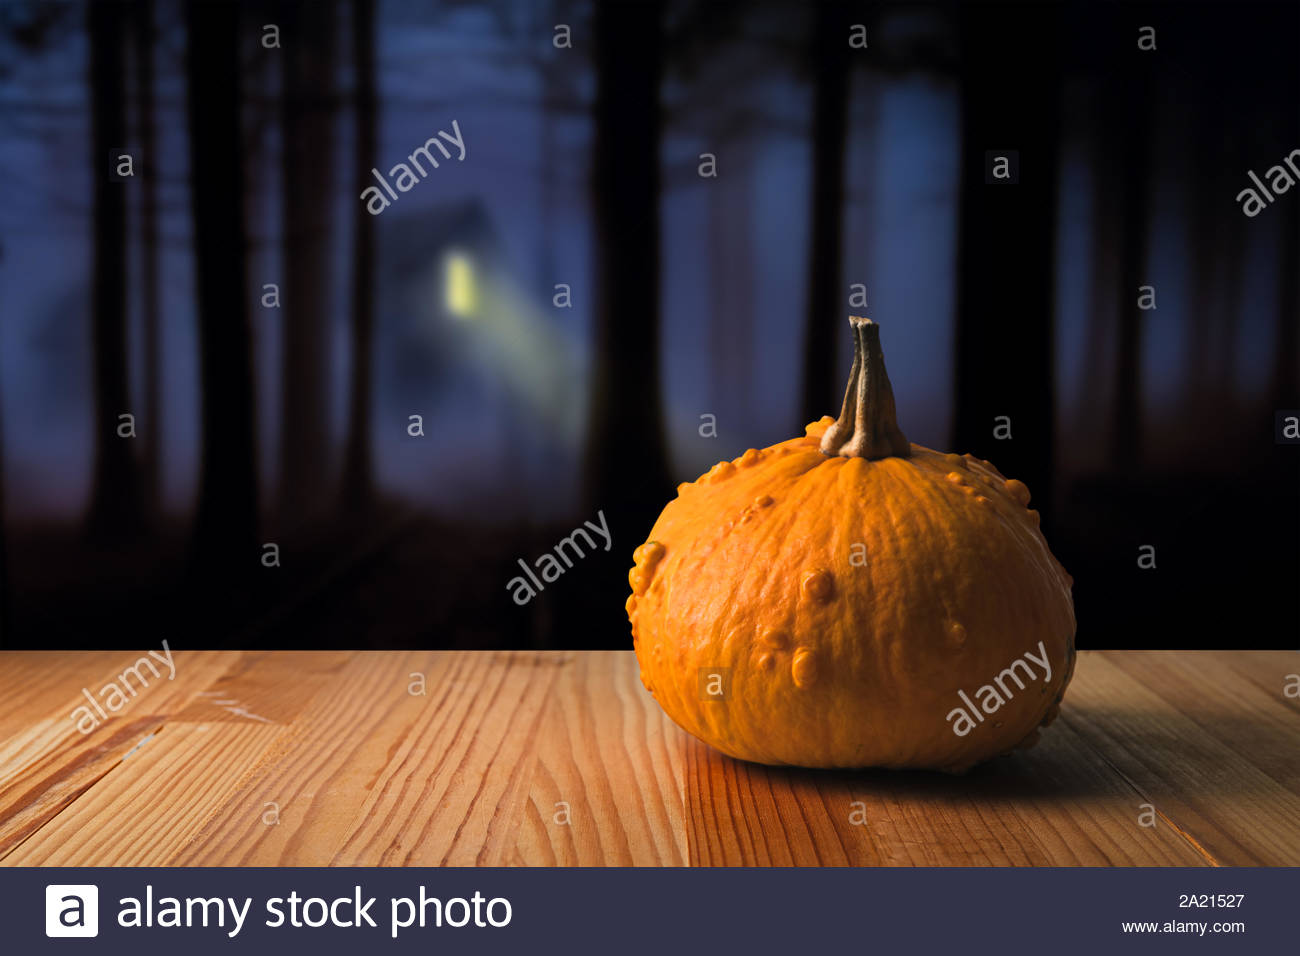 orange halloween pumpkin on a spooky night forest background copy space on the left 2A